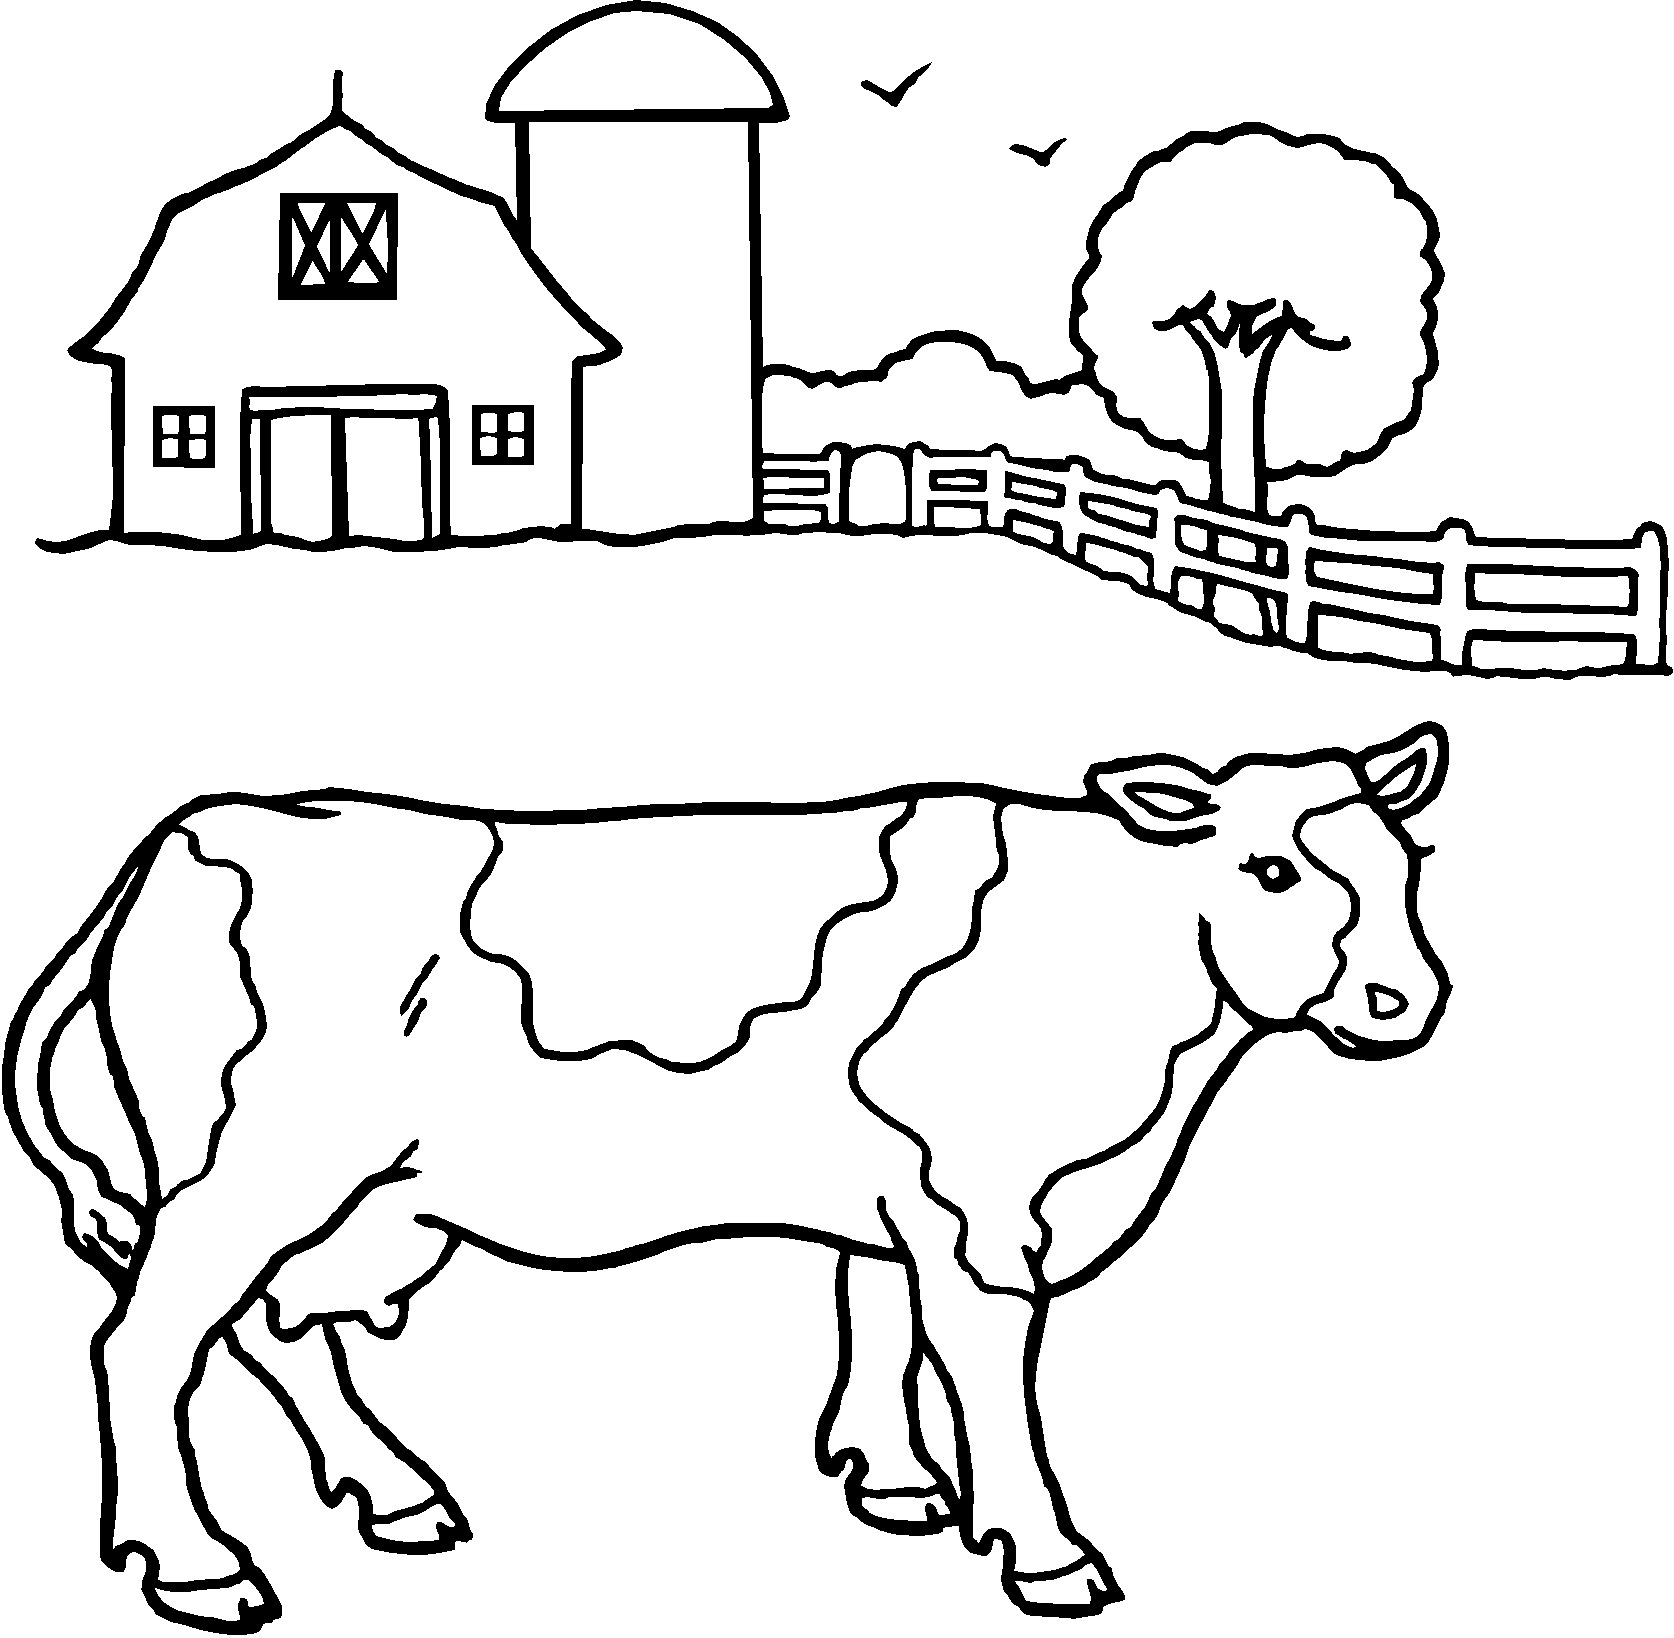 Cow eating grass baby cow coloring pages huiltur co